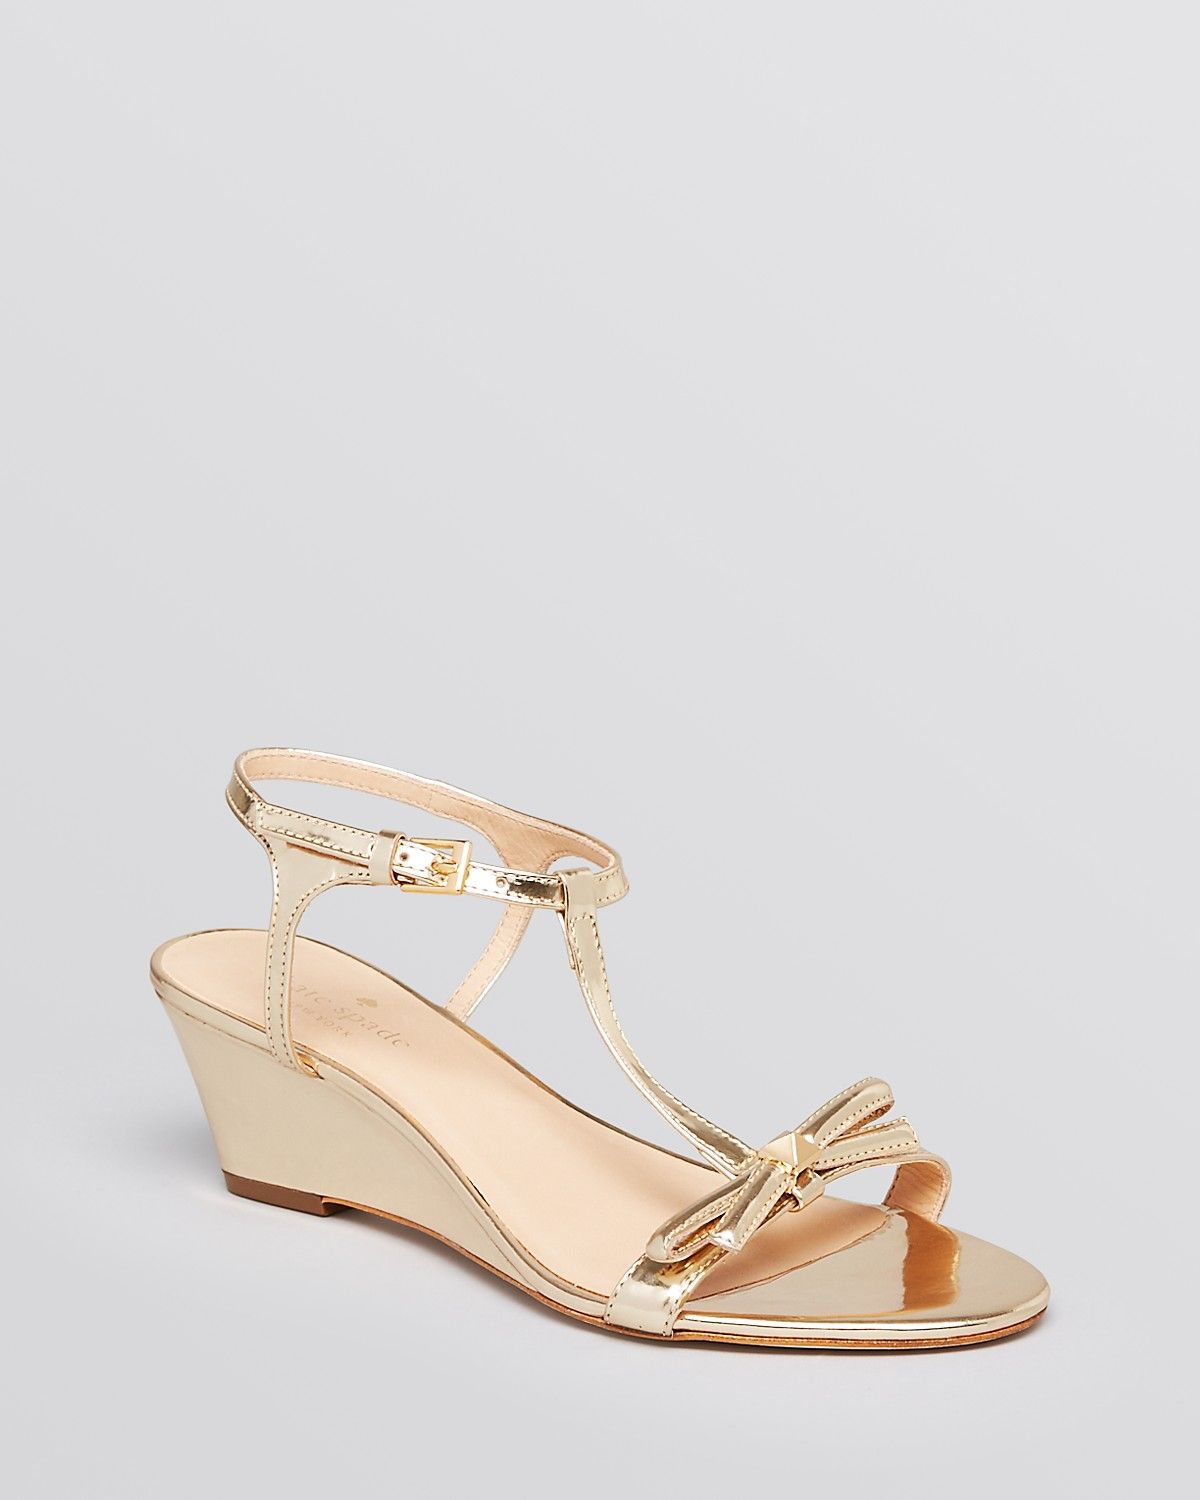 93cc97a3b535 kate spade new york Wedge Sandals - Donna T Strap